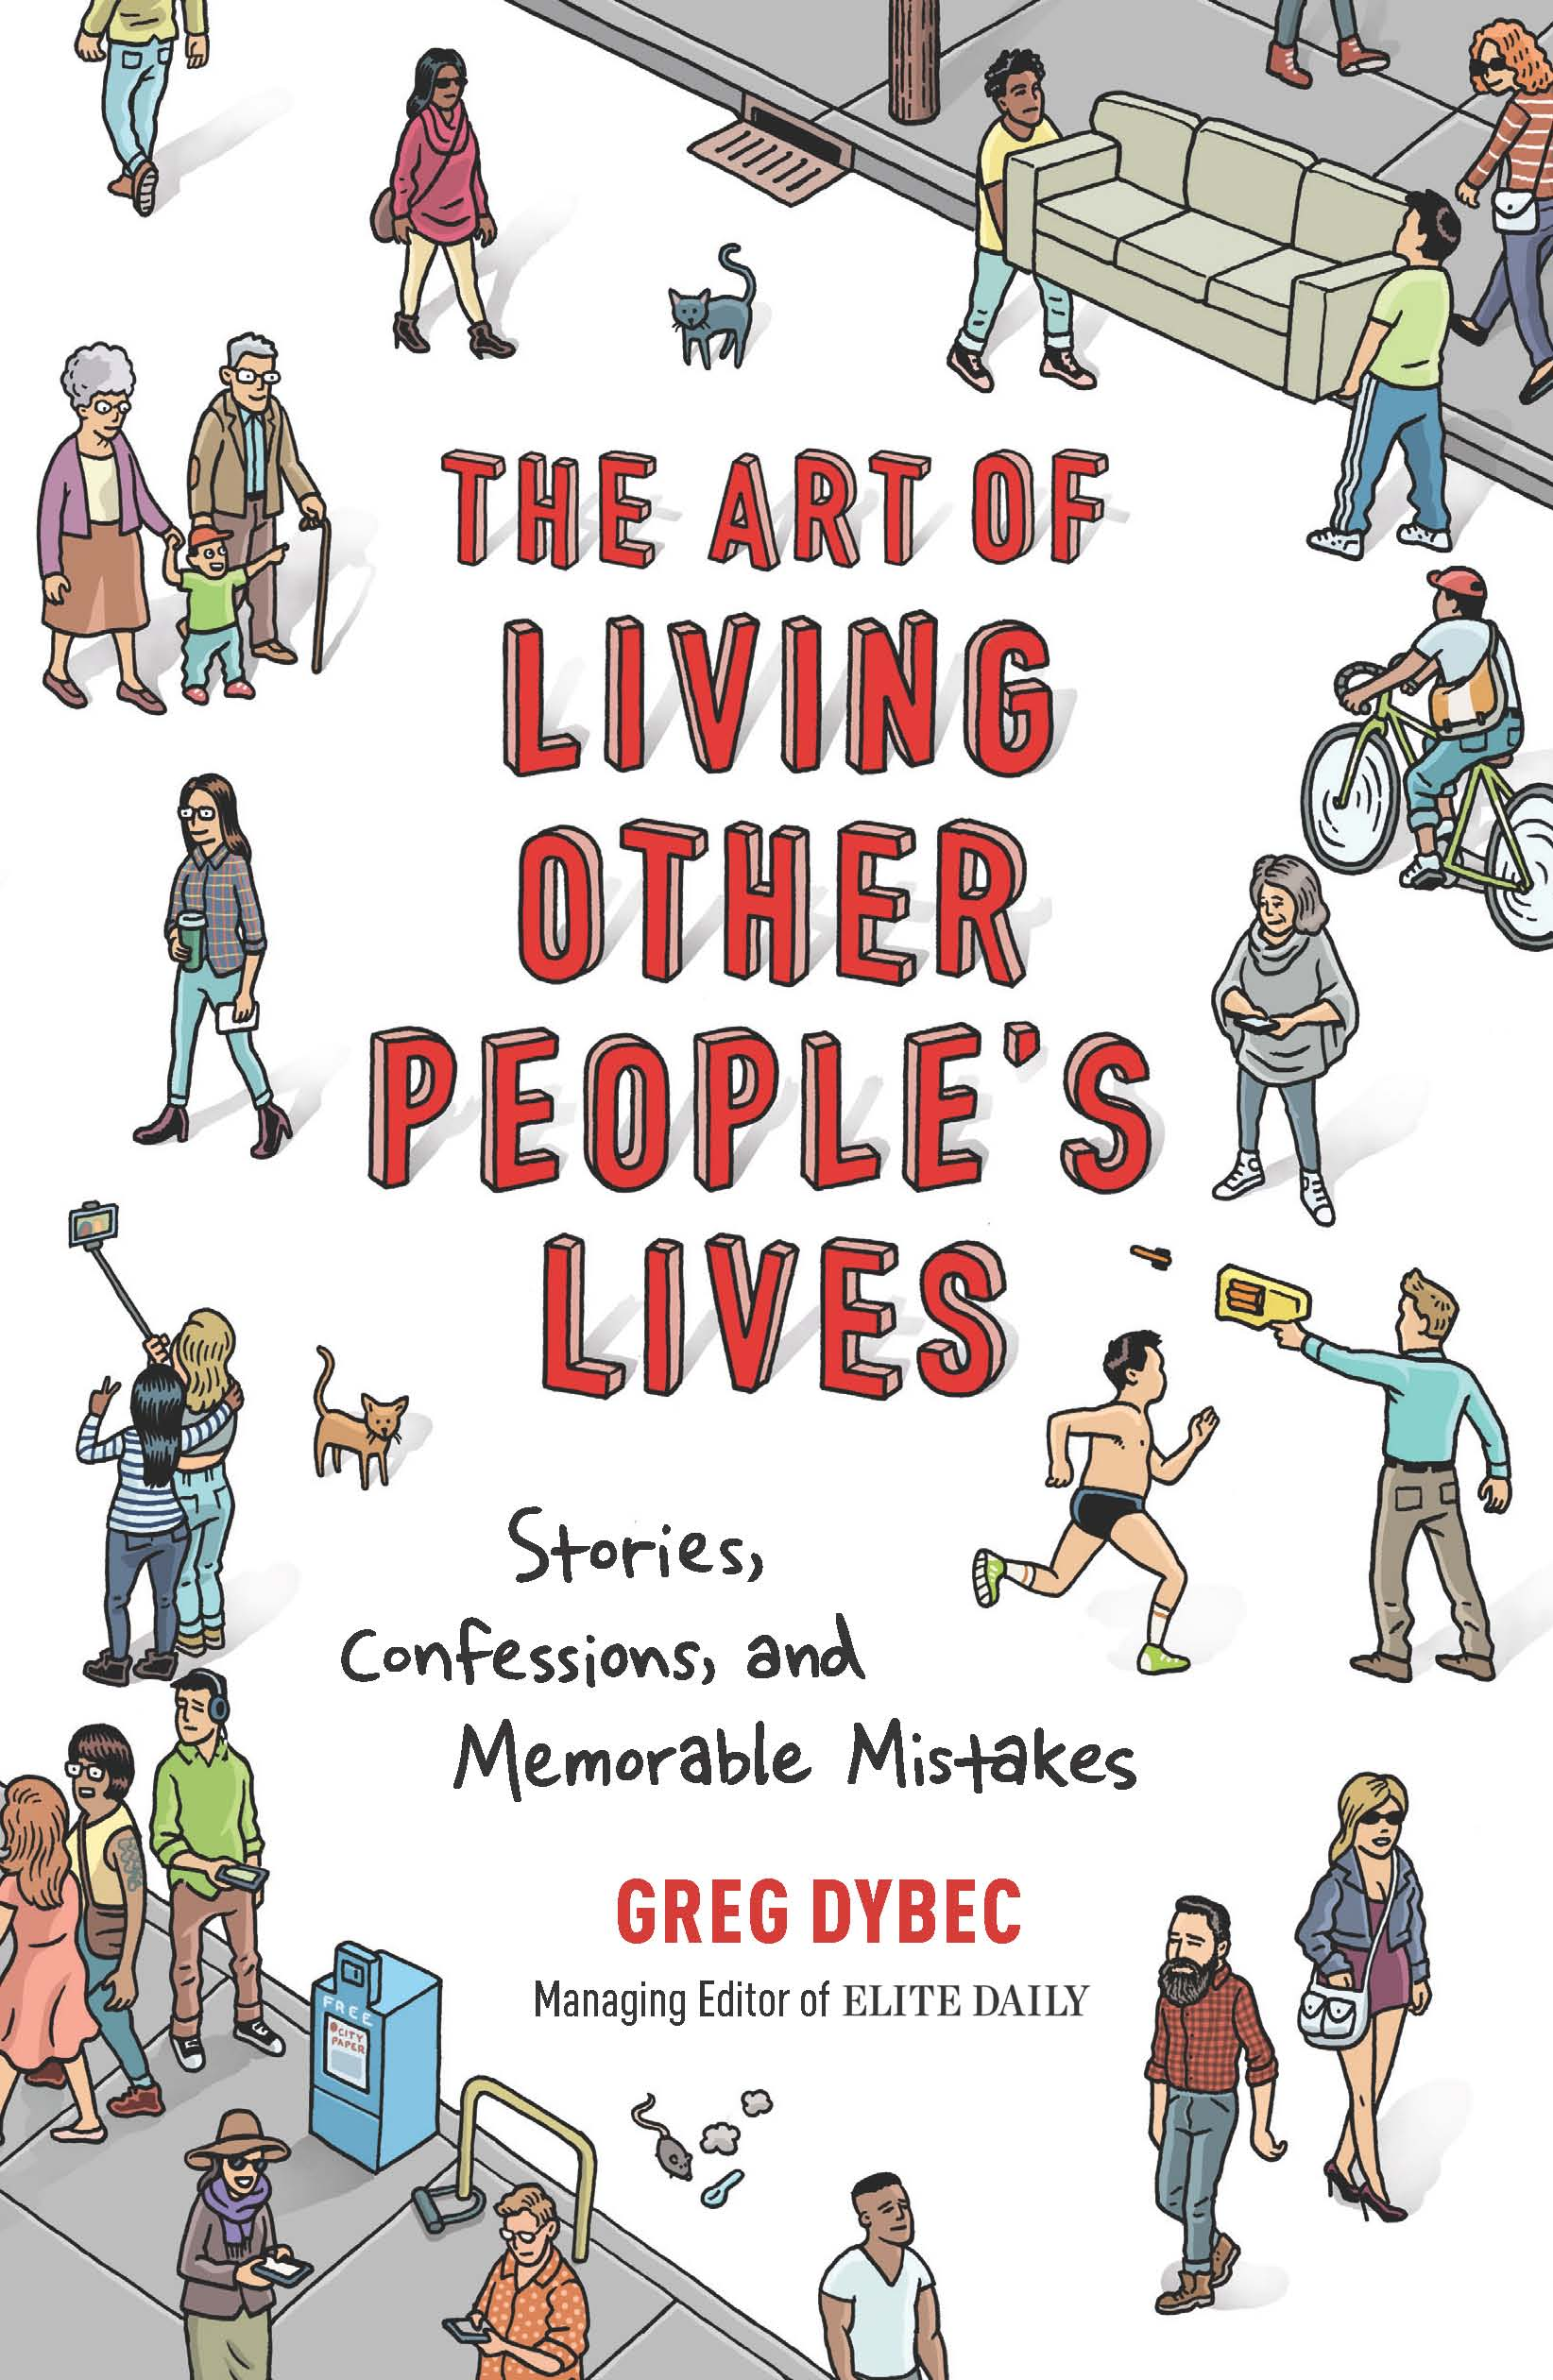 The Art of Living Other People's Lives